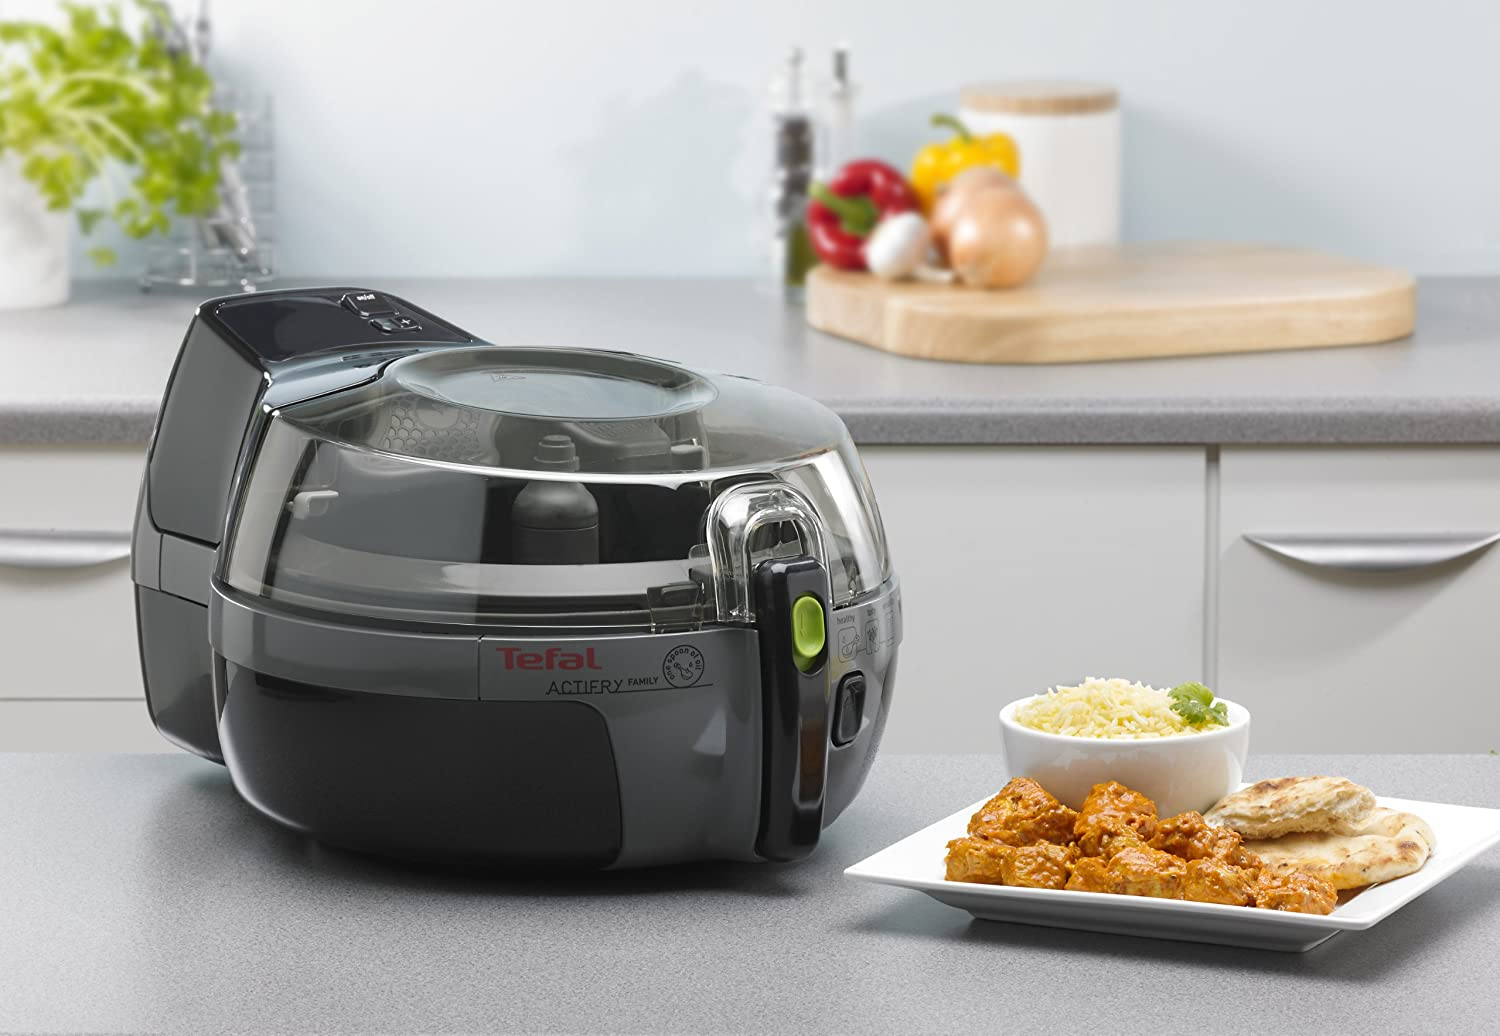 Tefal ActiFry Family - 1.5kg